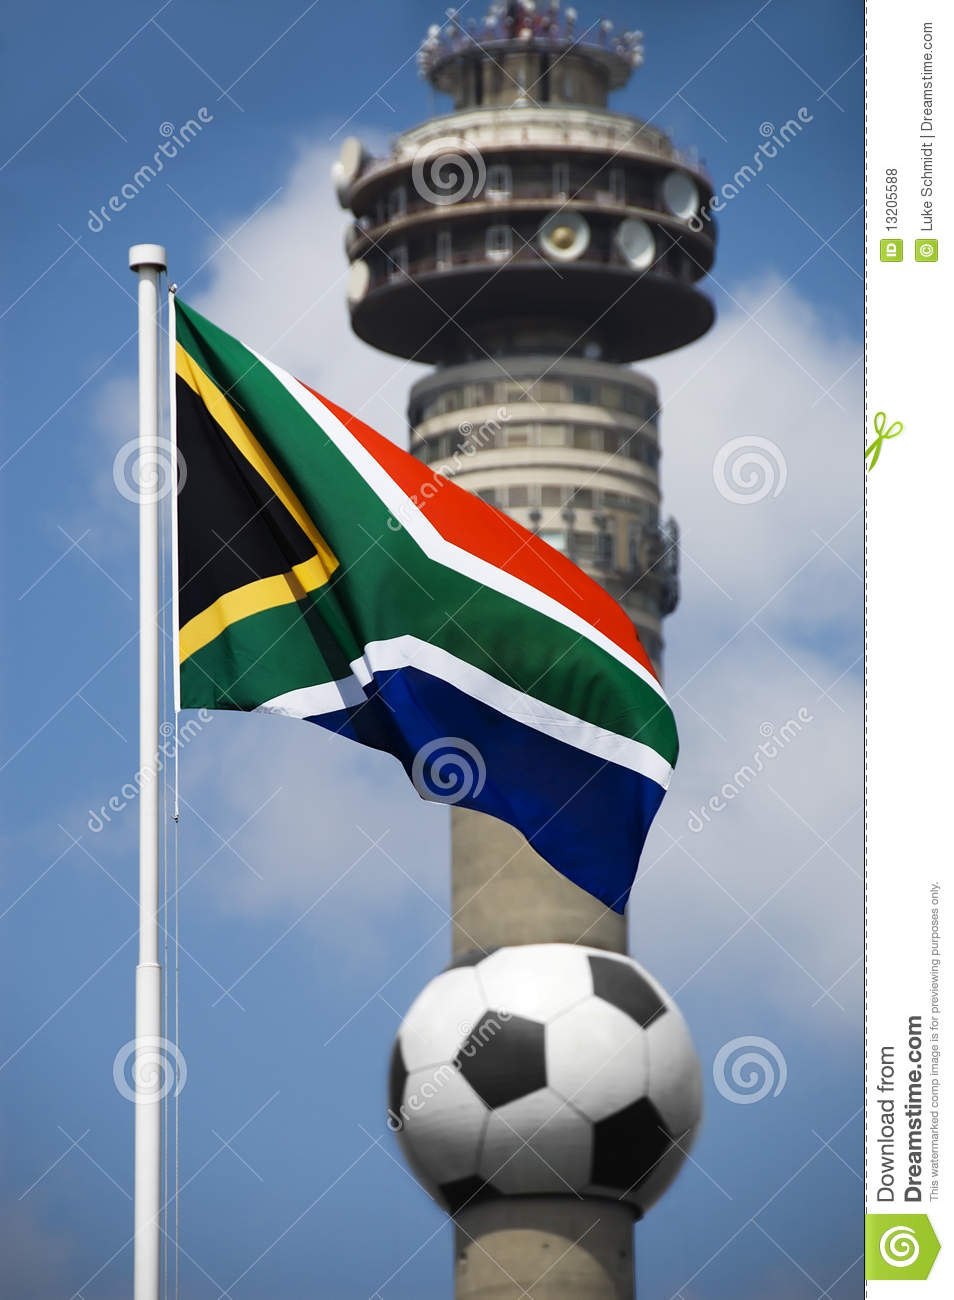 South African Flag and 2010 Football World Cup ico